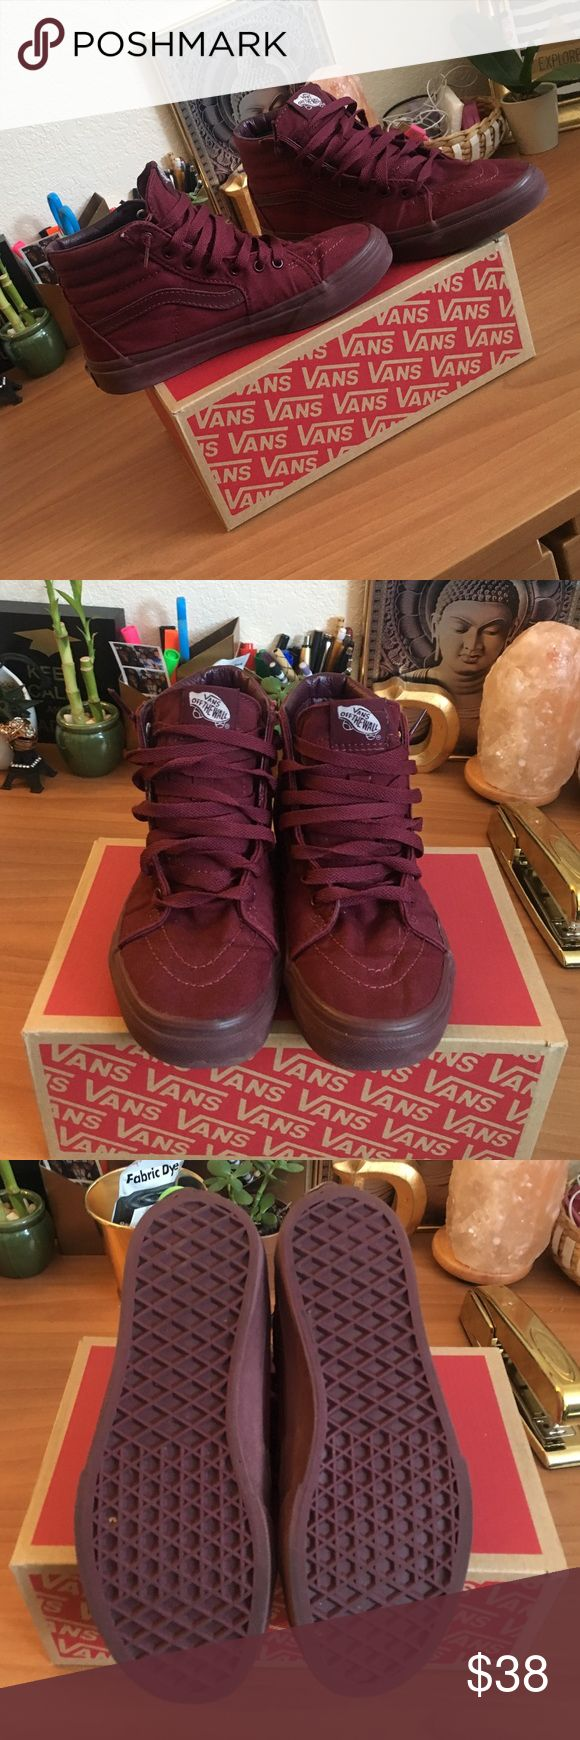 Maroon vans! Absolutely NOTHING wrong with them just a little snug on my feet. They are still in great condition. Size 3 in kids but fits a woman's 5.5 Vans Shoes Sneakers